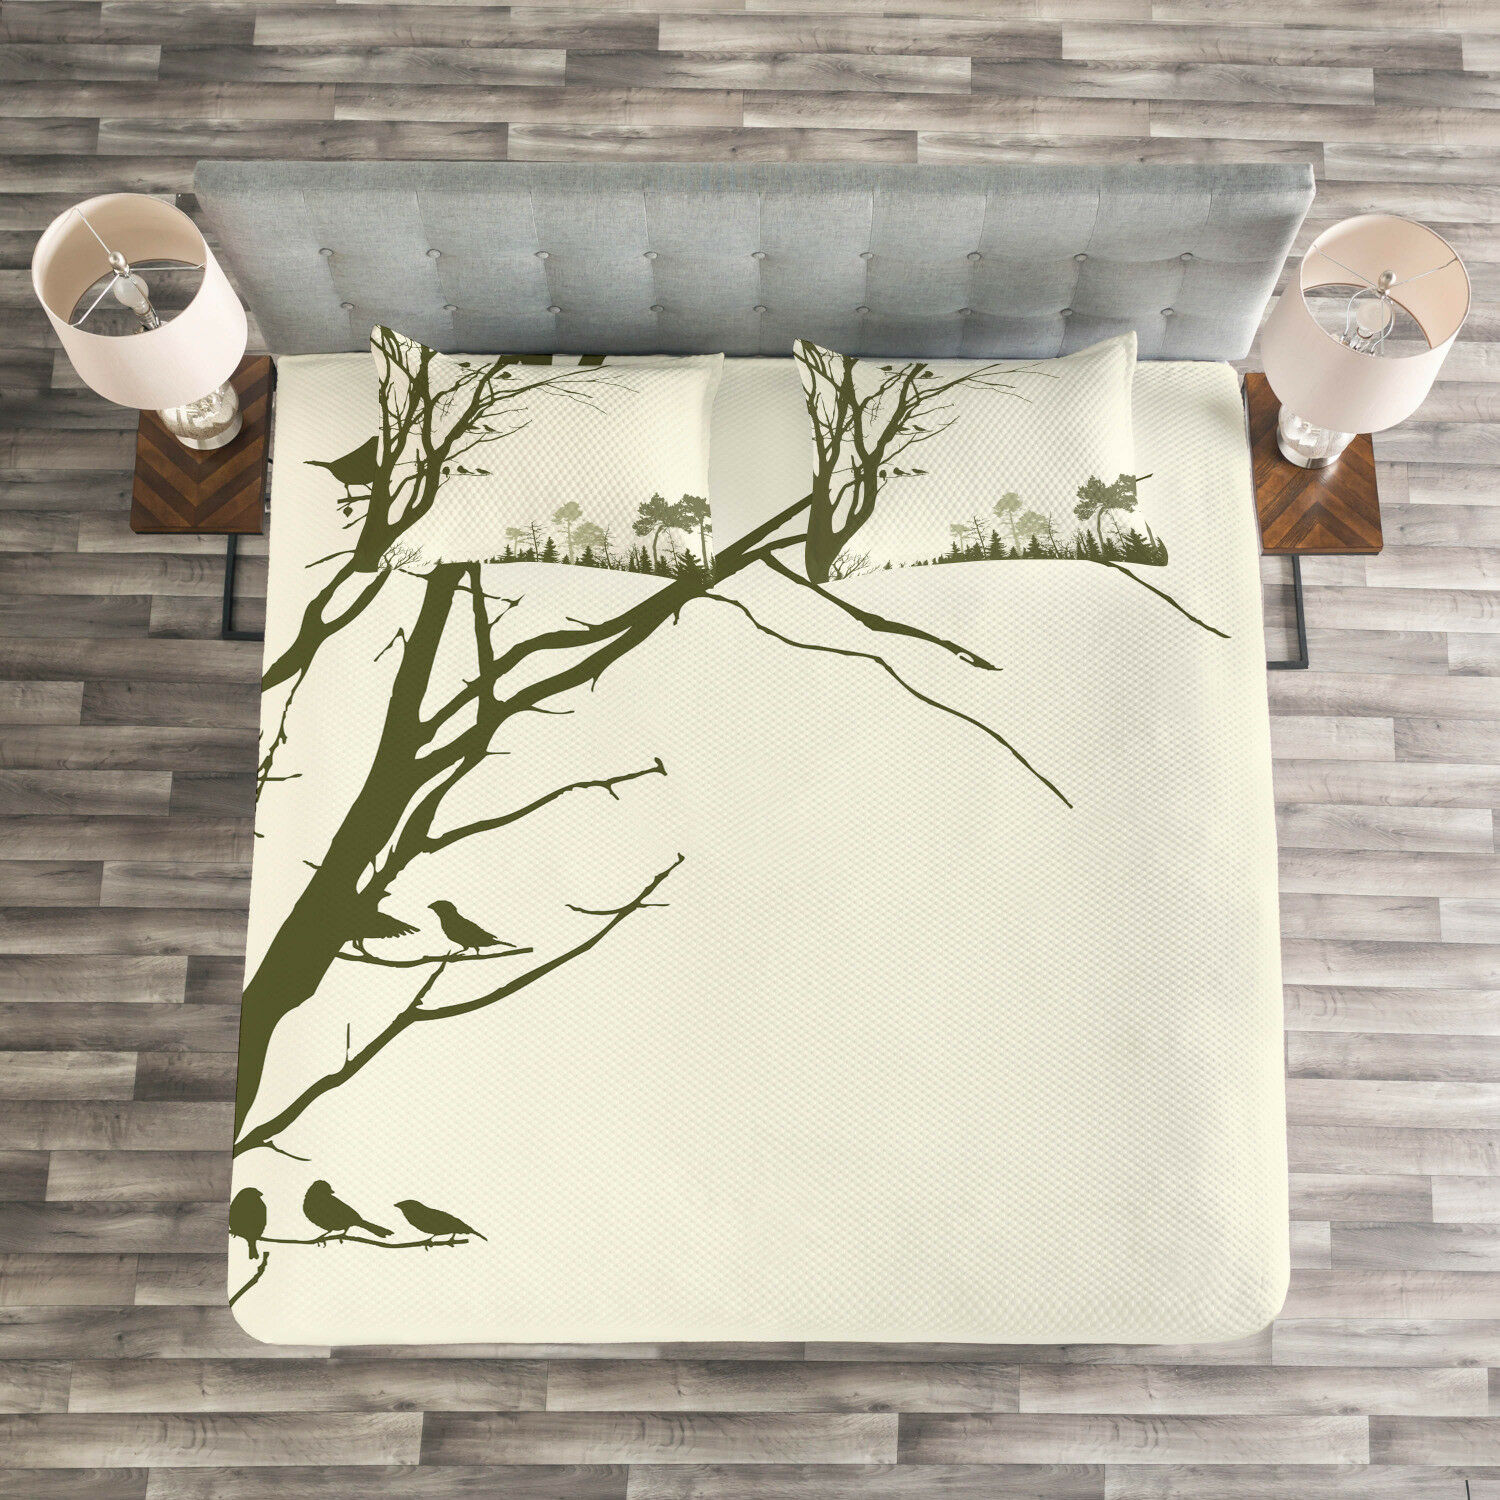 Landscape Quilted Bedspread & Pillow Shams Set, Forest Birds on Tree Print